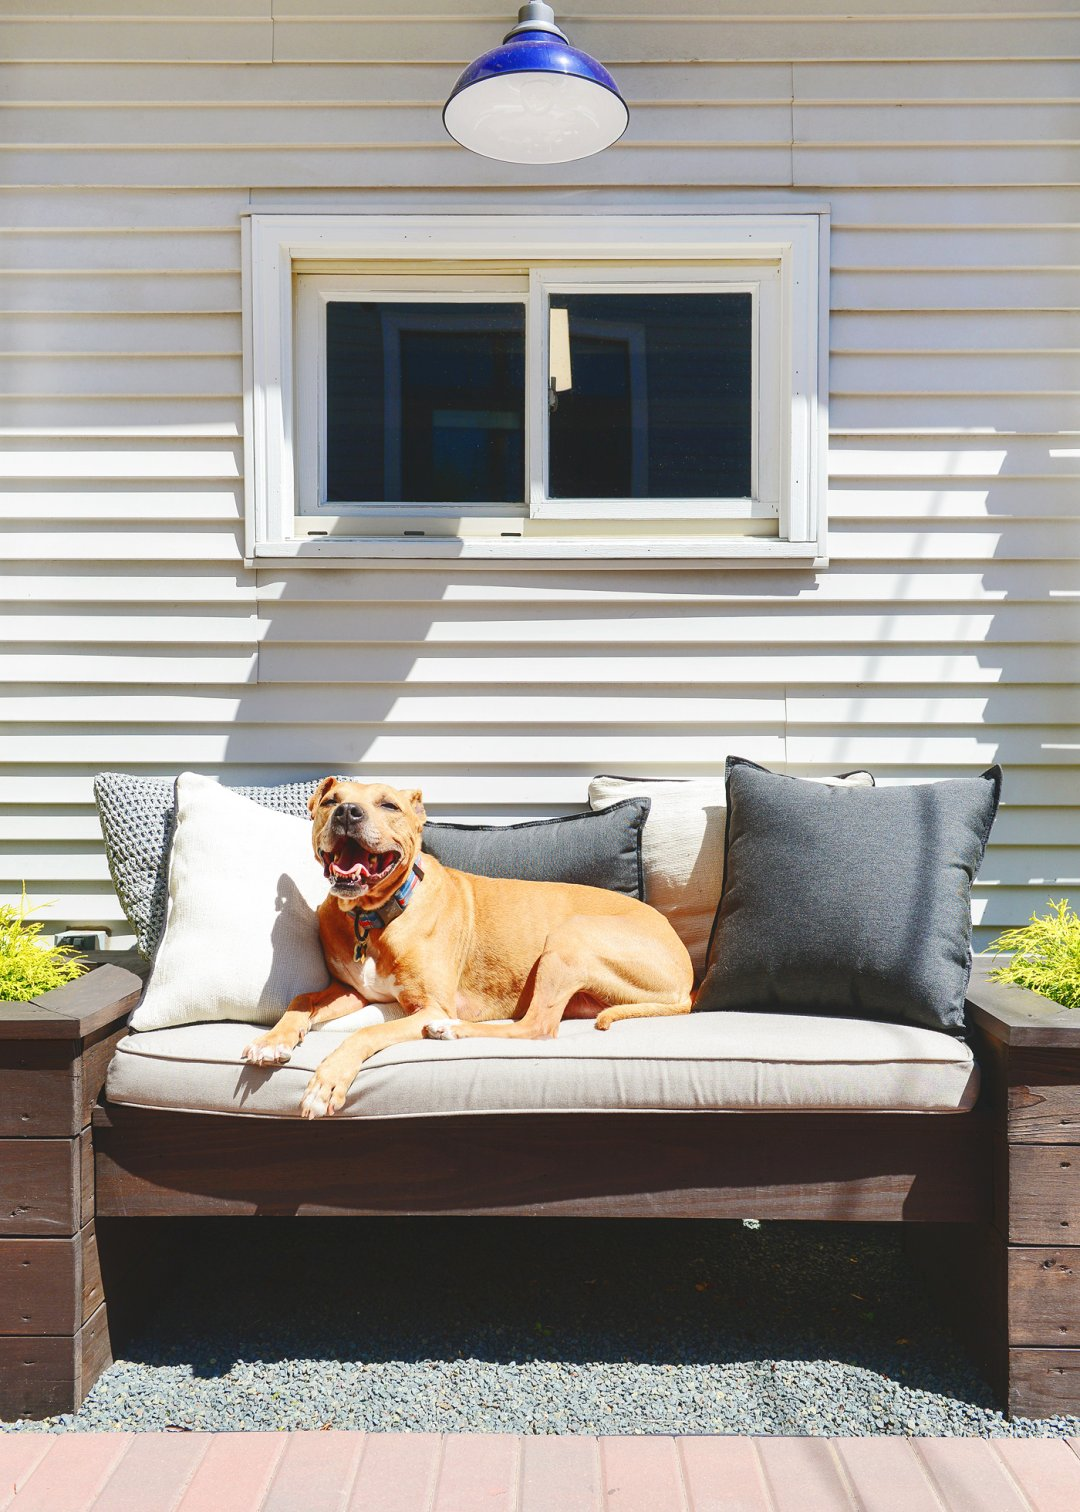 Brown dog laying on outdoor bench with pillows